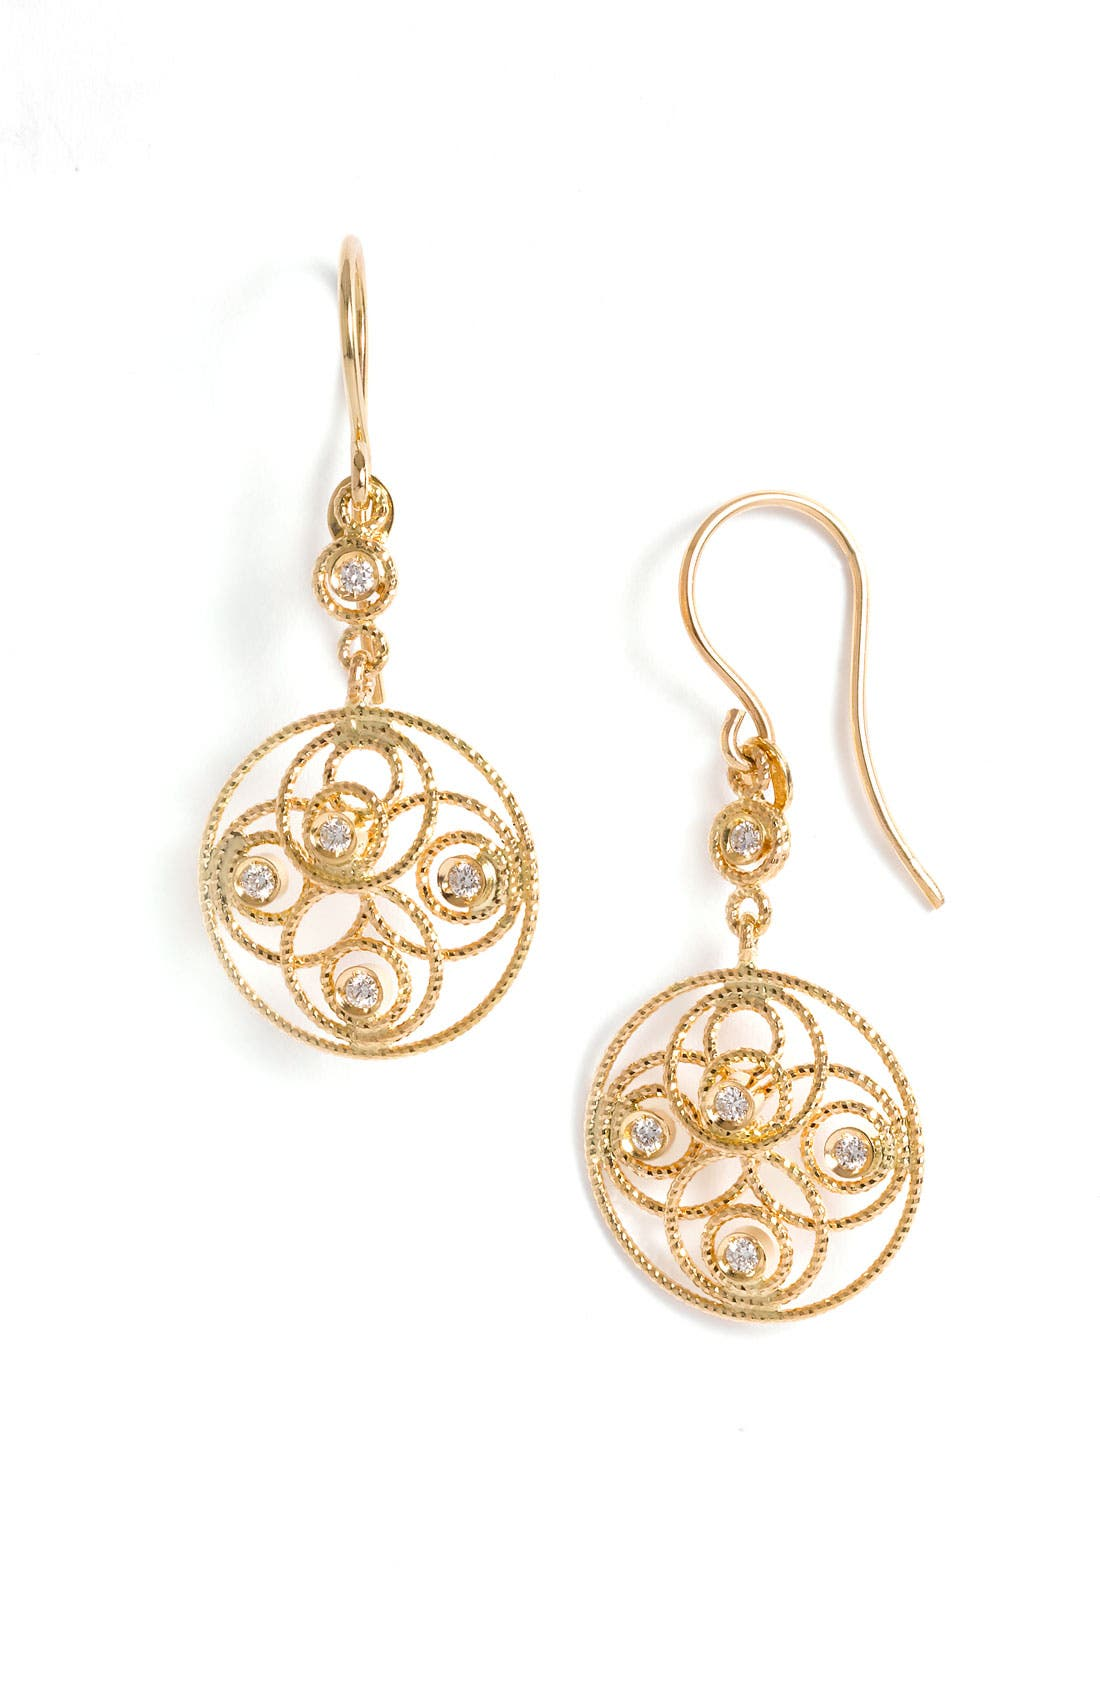 Main Image - Roberto Coin 'Moresque' Diamond Circle Earrings